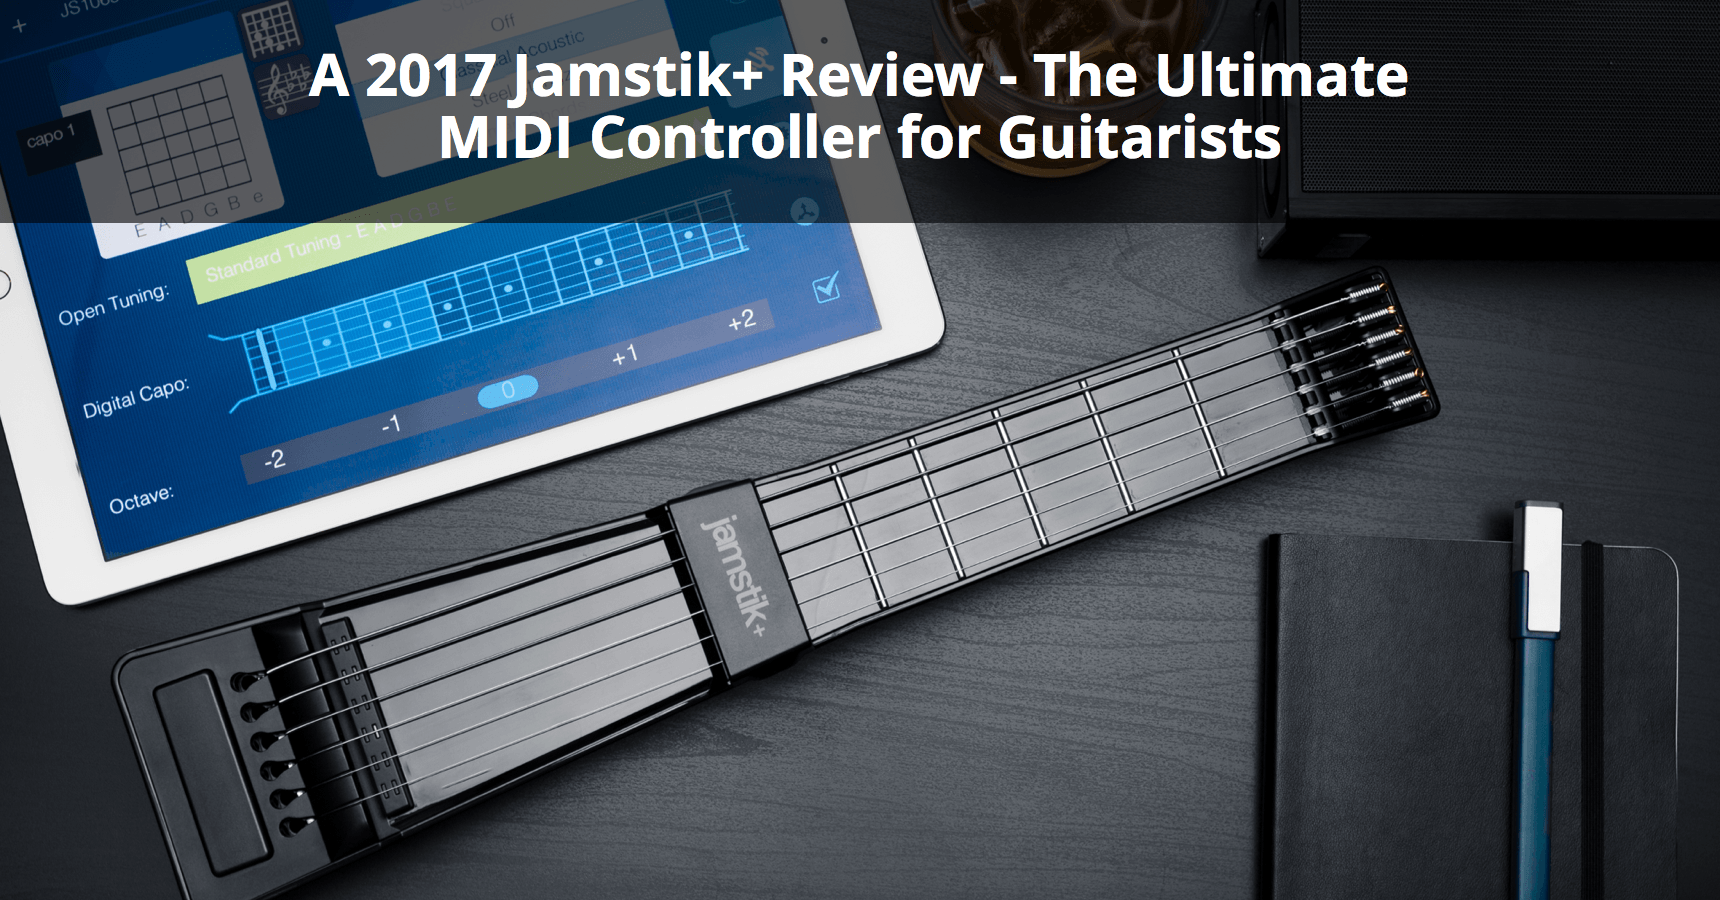 2017 jamstik review the ultimate midi controller for guitarists 2017 jamstik review the ultimate midi controller for guitarists musician tuts hexwebz Image collections